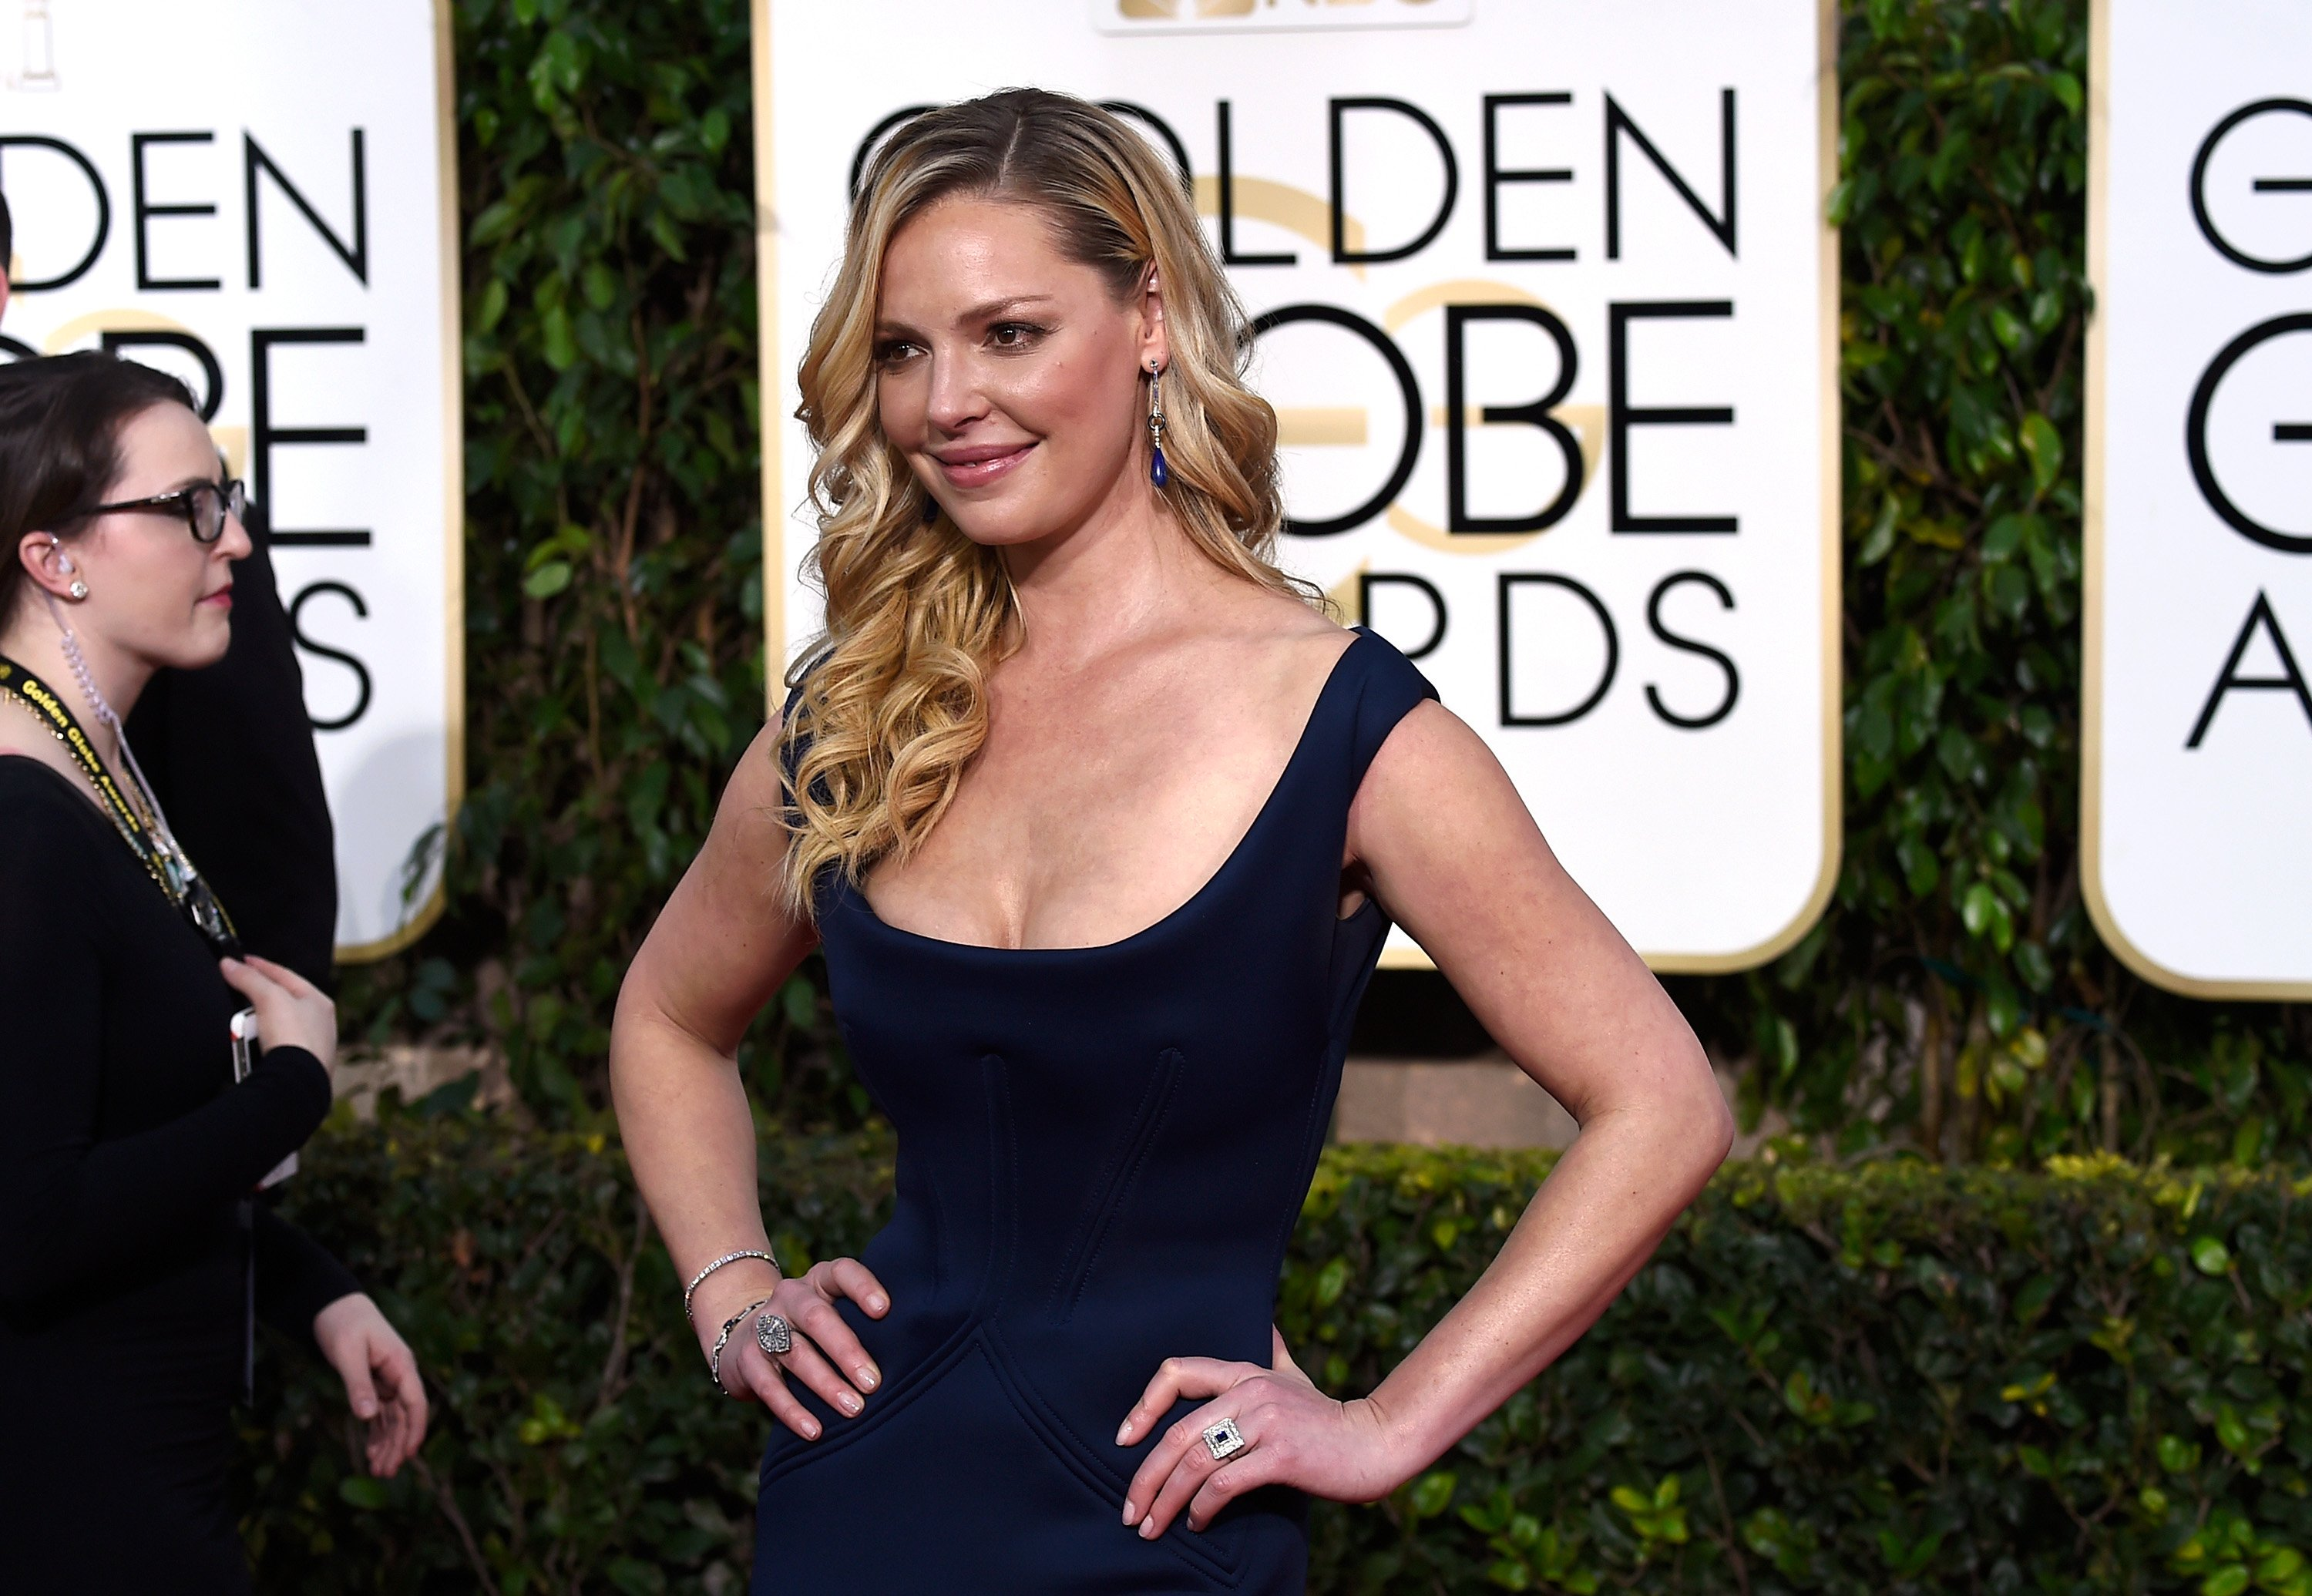 Katherine Heigl pictured at the 72nd Annual Golden Globe Awards, 2015, California. | Photo: Getty Images